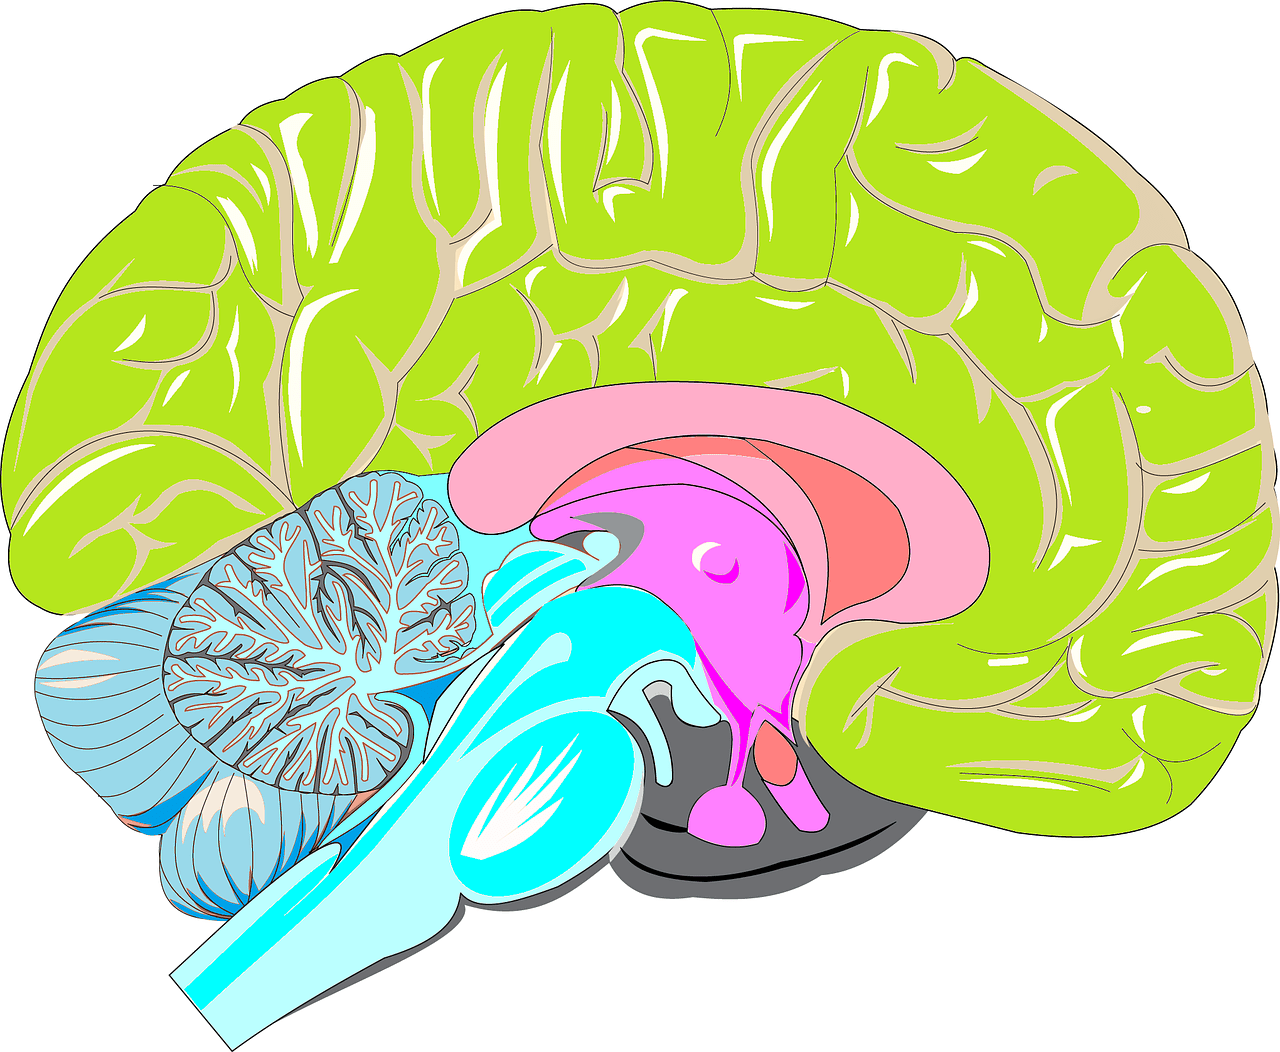 Is Brain Inflammation A Consequence Of Obesity?